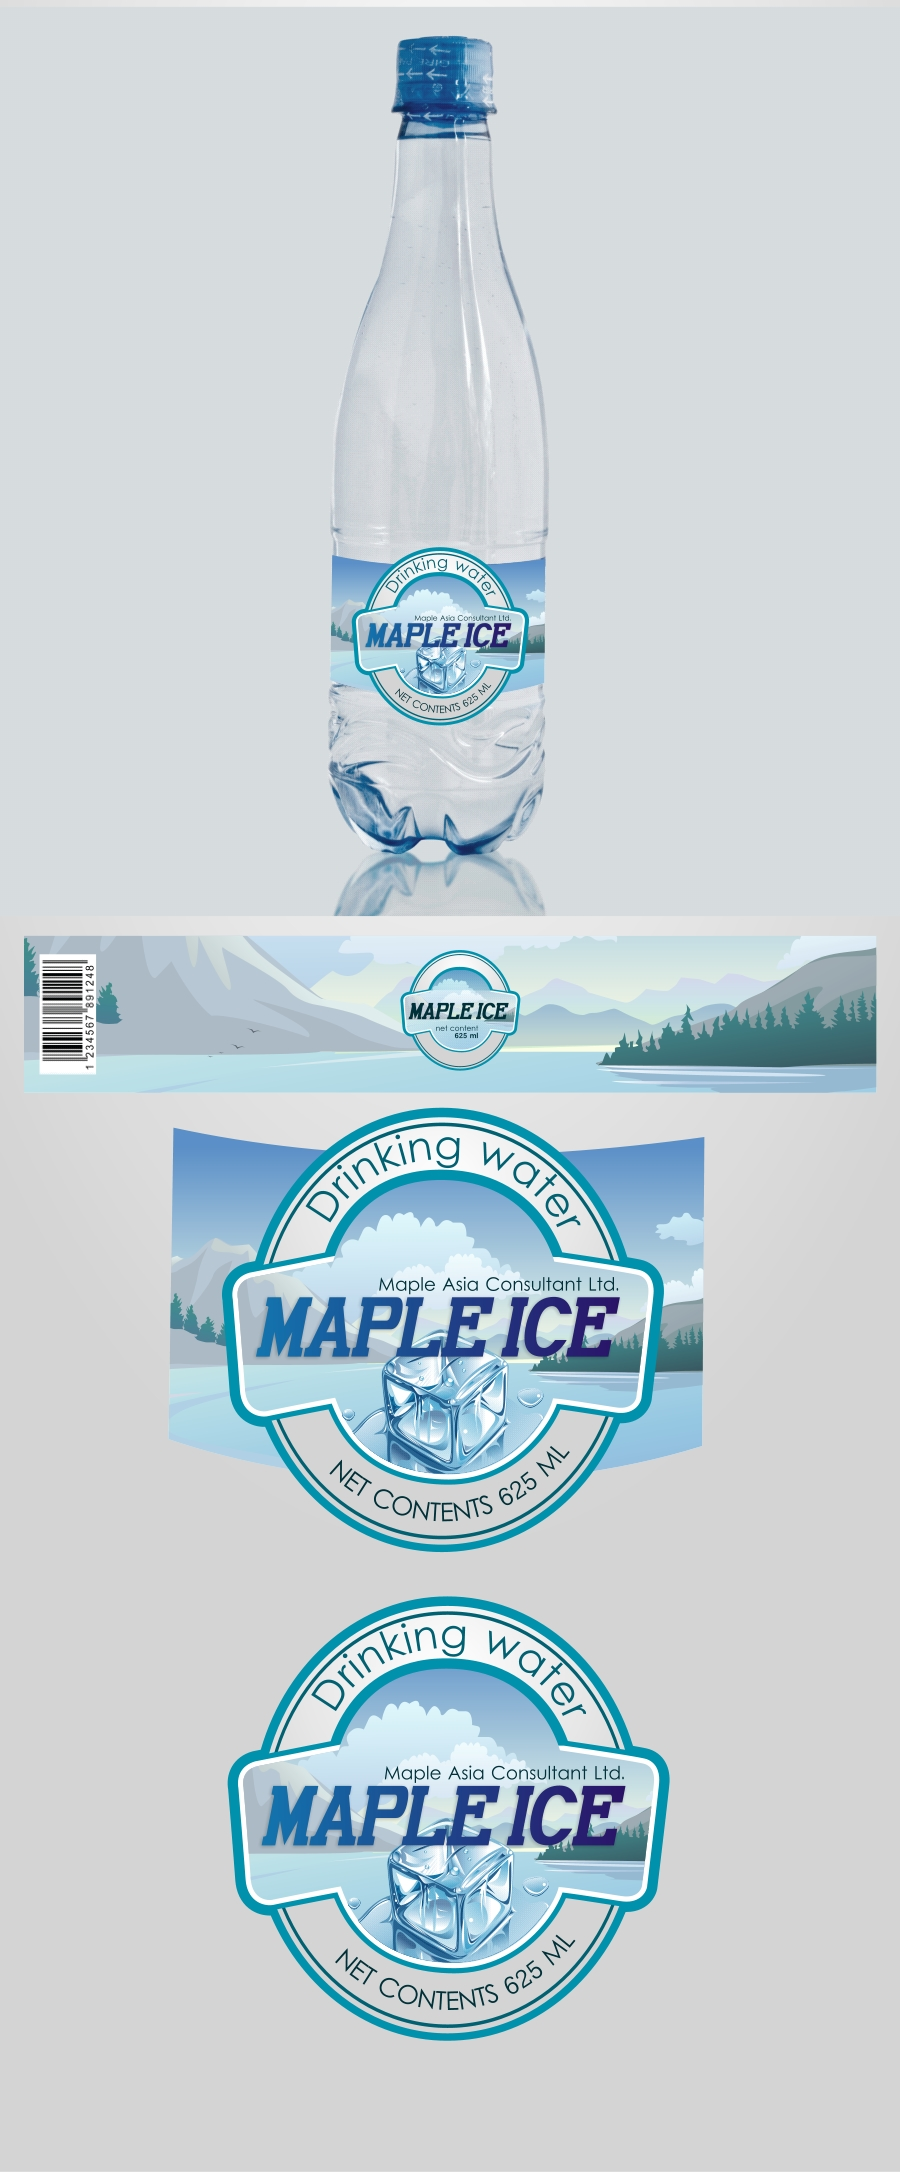 Packaging Design by Private User - Entry No. 15 in the Packaging Design Contest Unique Label/Packaging Design Wanted for Premium Bottled Water (Maple Ice).